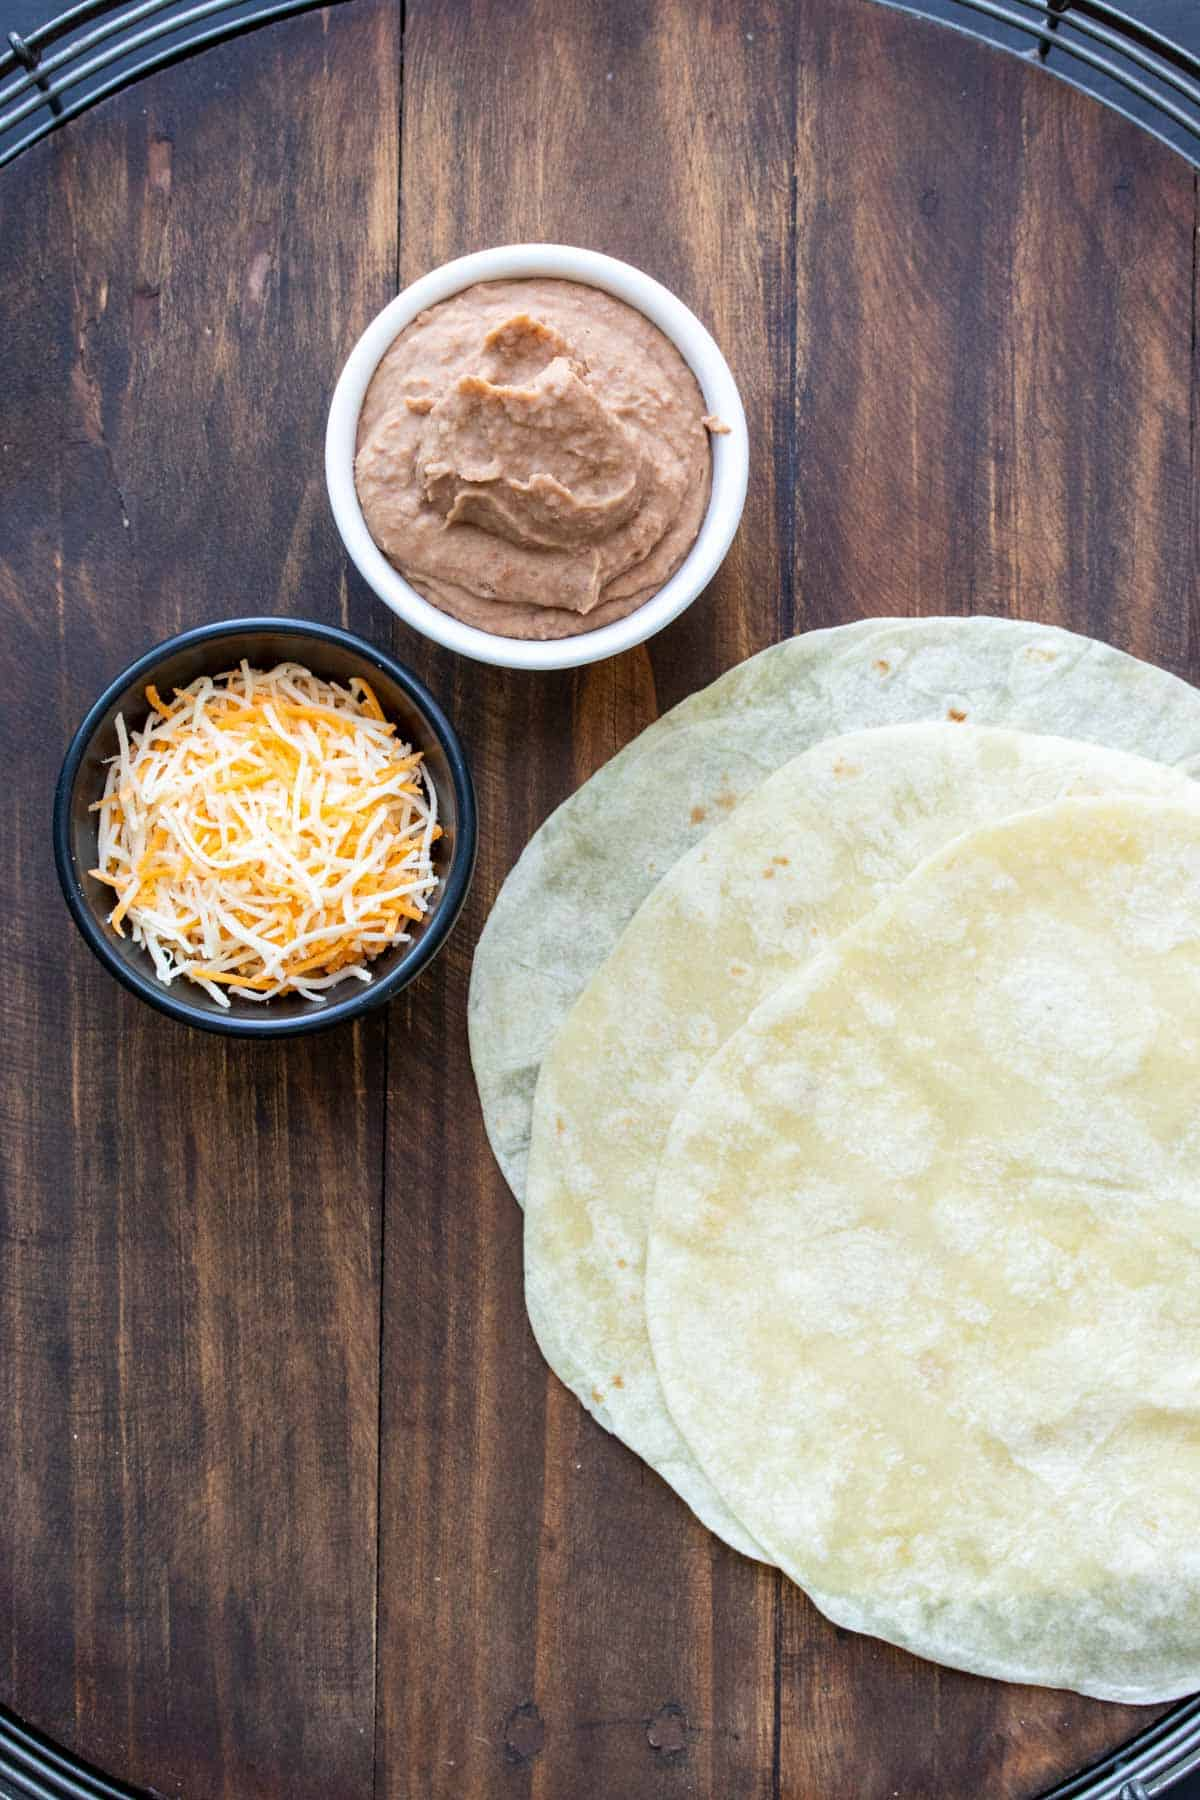 Photo of tortillas and bowls of refried beans and shredded cheese on a wooden surface